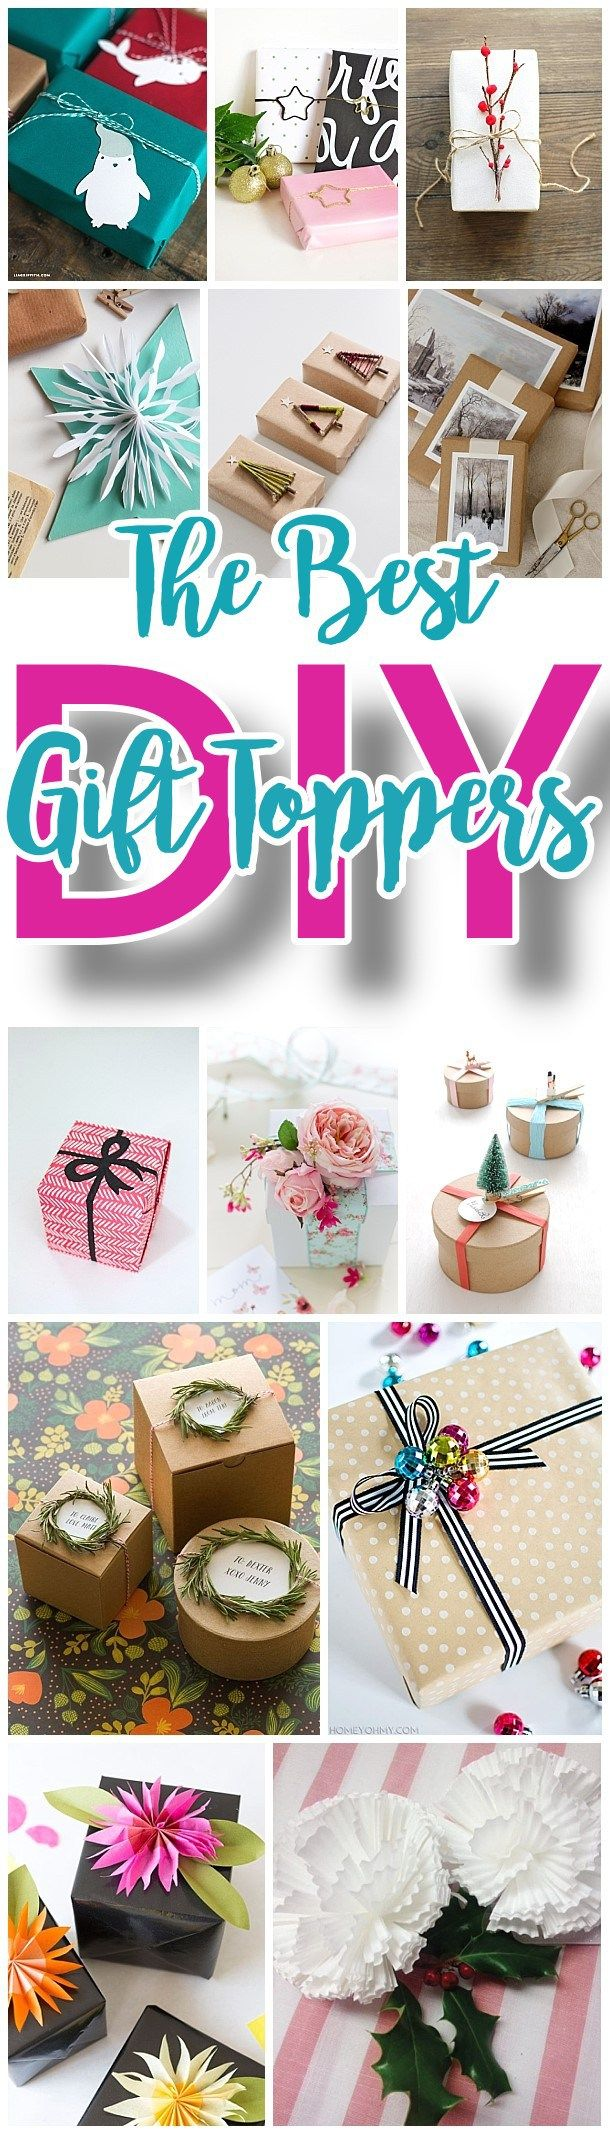 The BEST DIY Gift Toppers - pretty handmade EASY, CHEAP and fun gift wrapping ideas for Christmas Birthdays Holidays and any time you want someone to feel extra special! - Dreaming in DIY